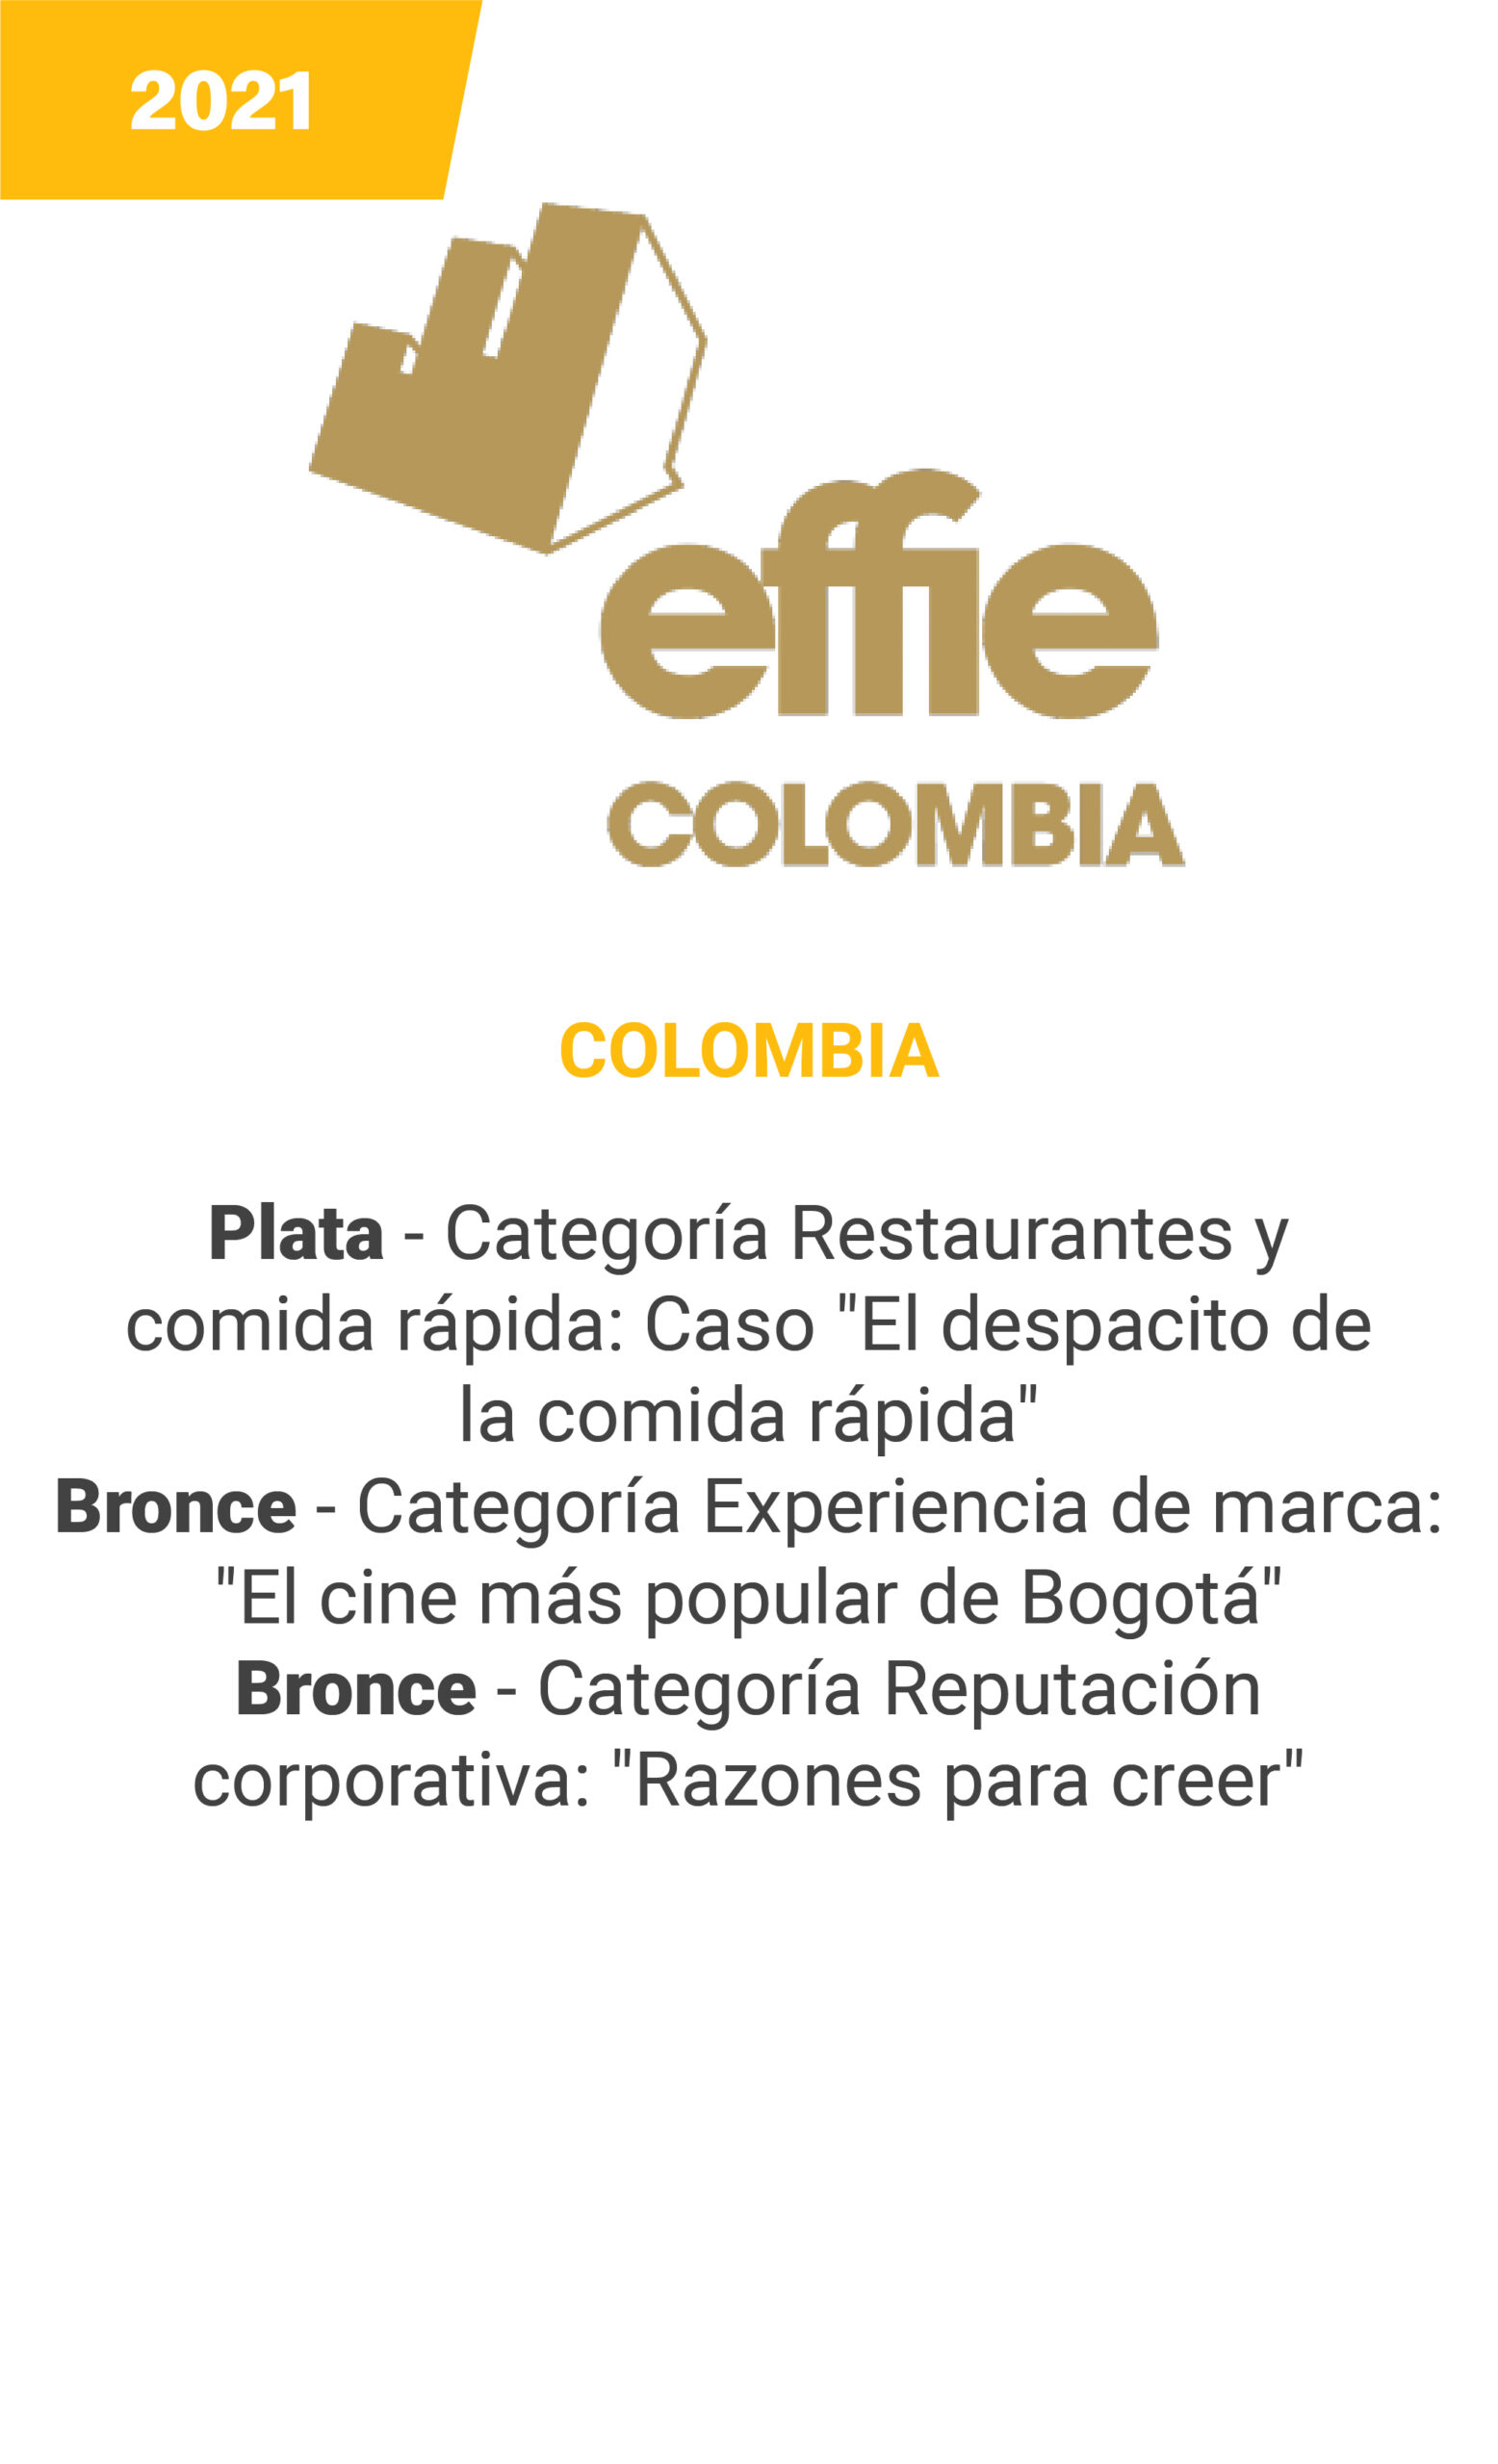 Effie-Colombia-mobile